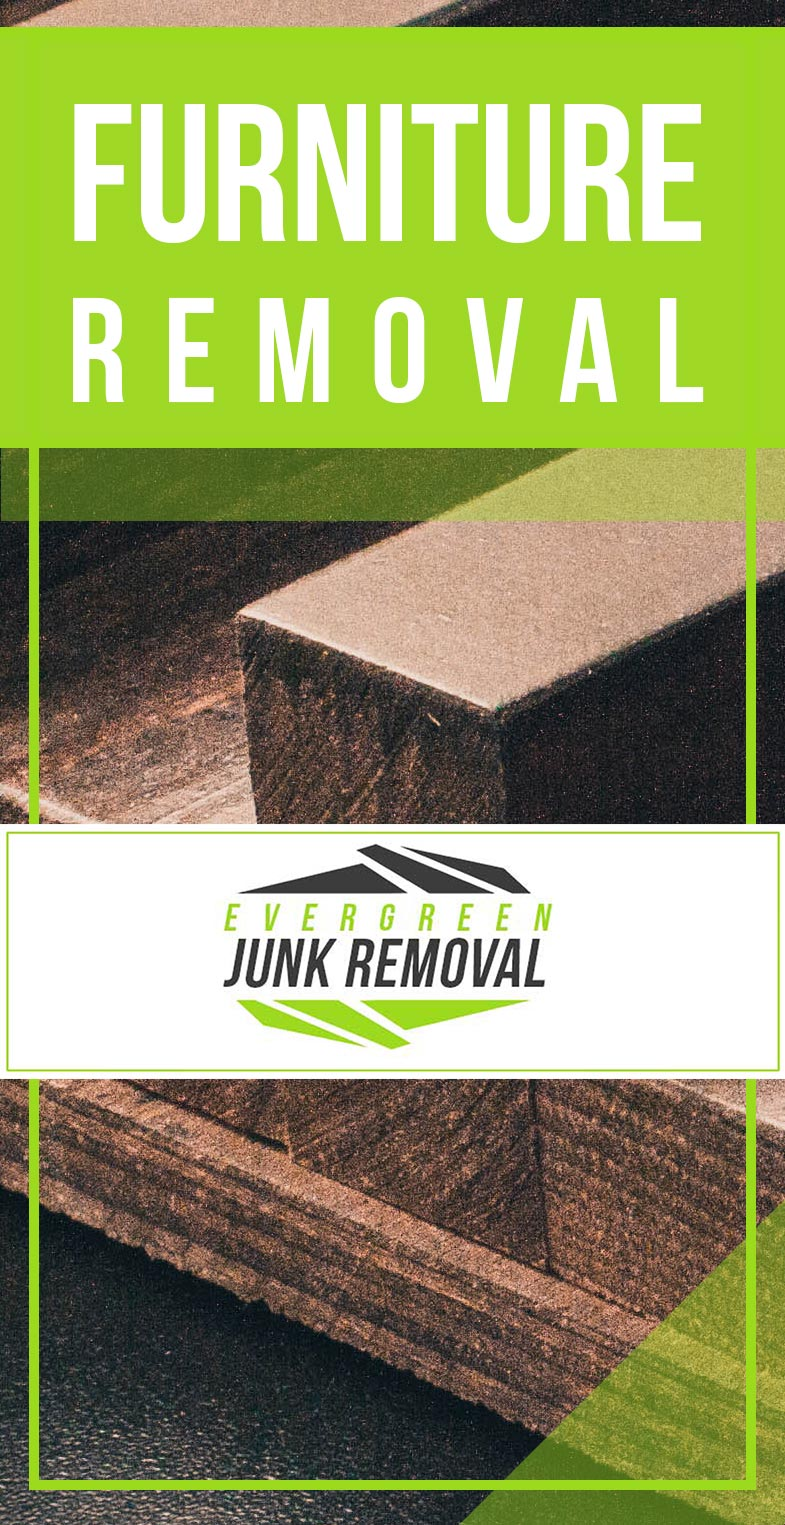 Chamblee Furniture Removal